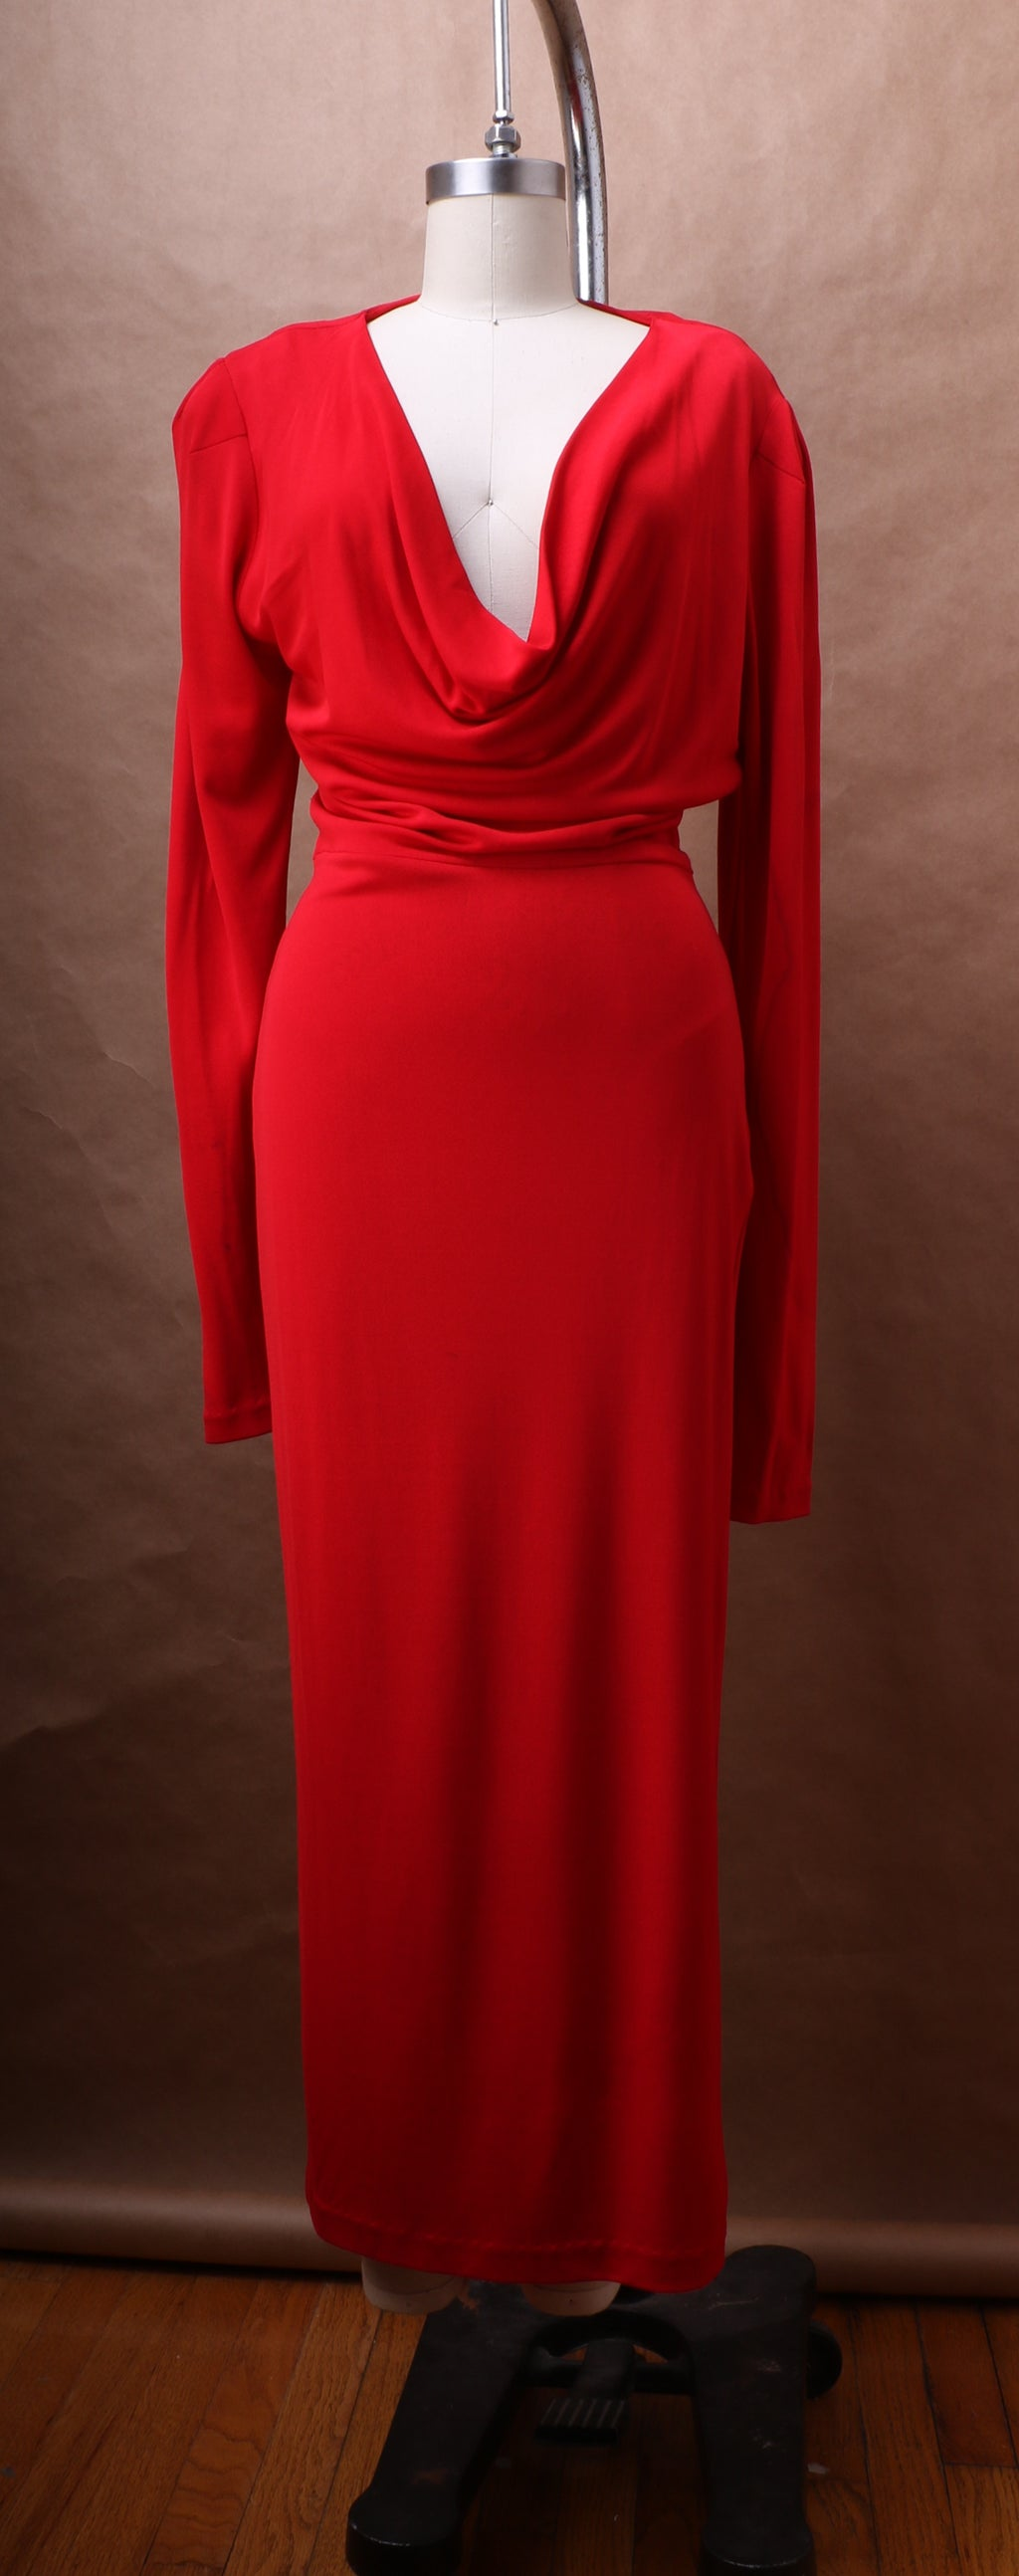 Norma Kamali Cowl Neck Stretch Jersey Dress c. 1990